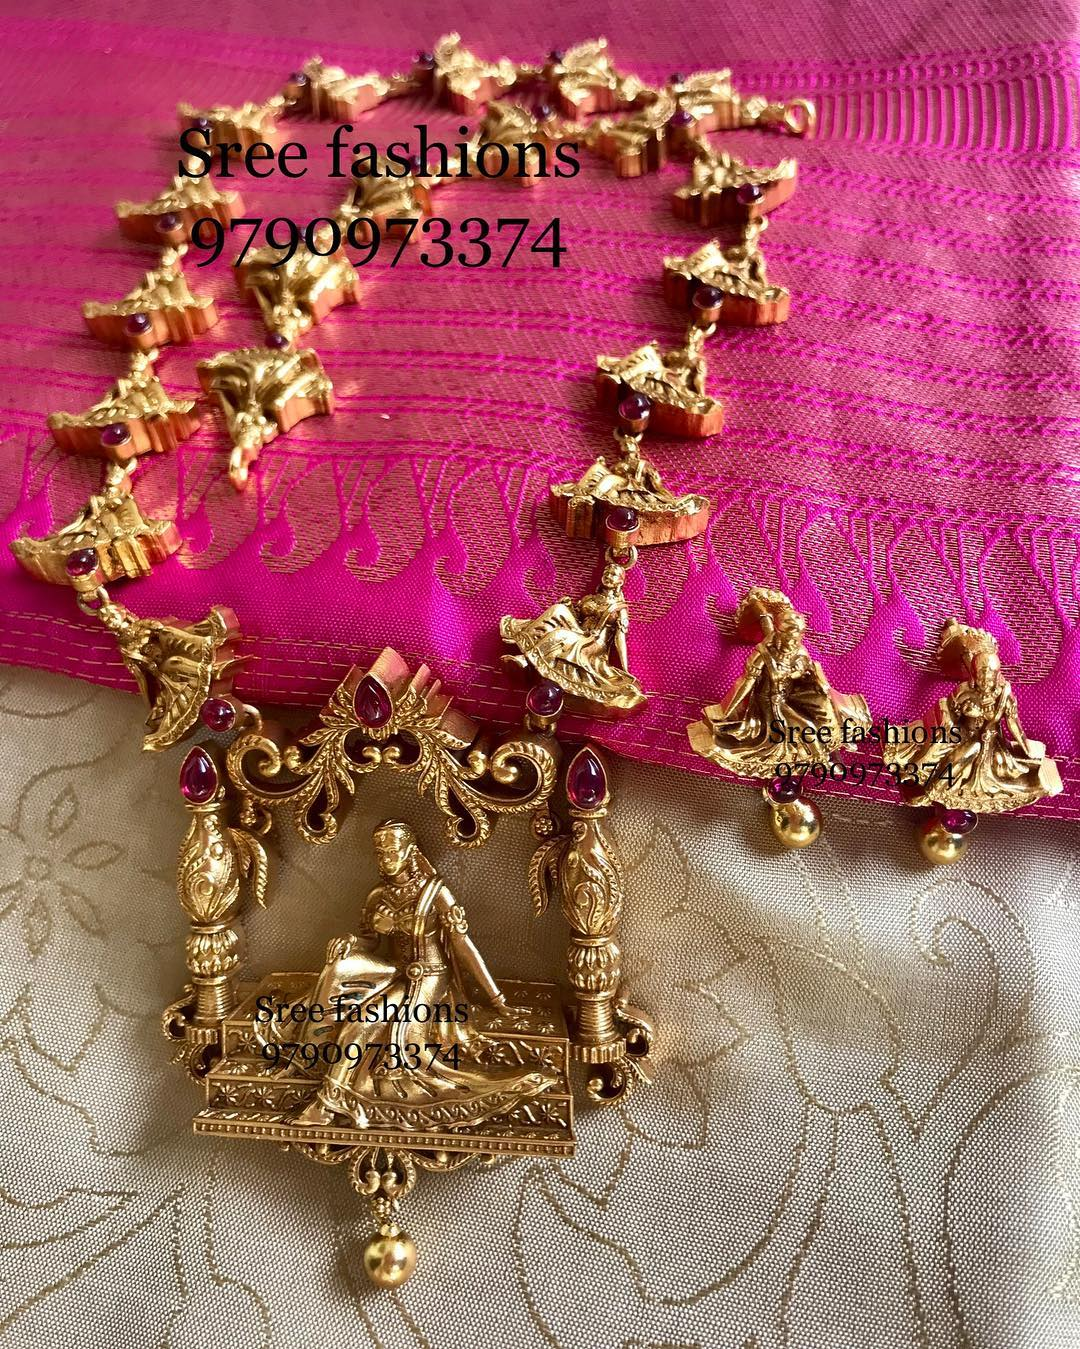 Decorative Devasena Nagas Haram From Sree Exotic Silver Jewelleries